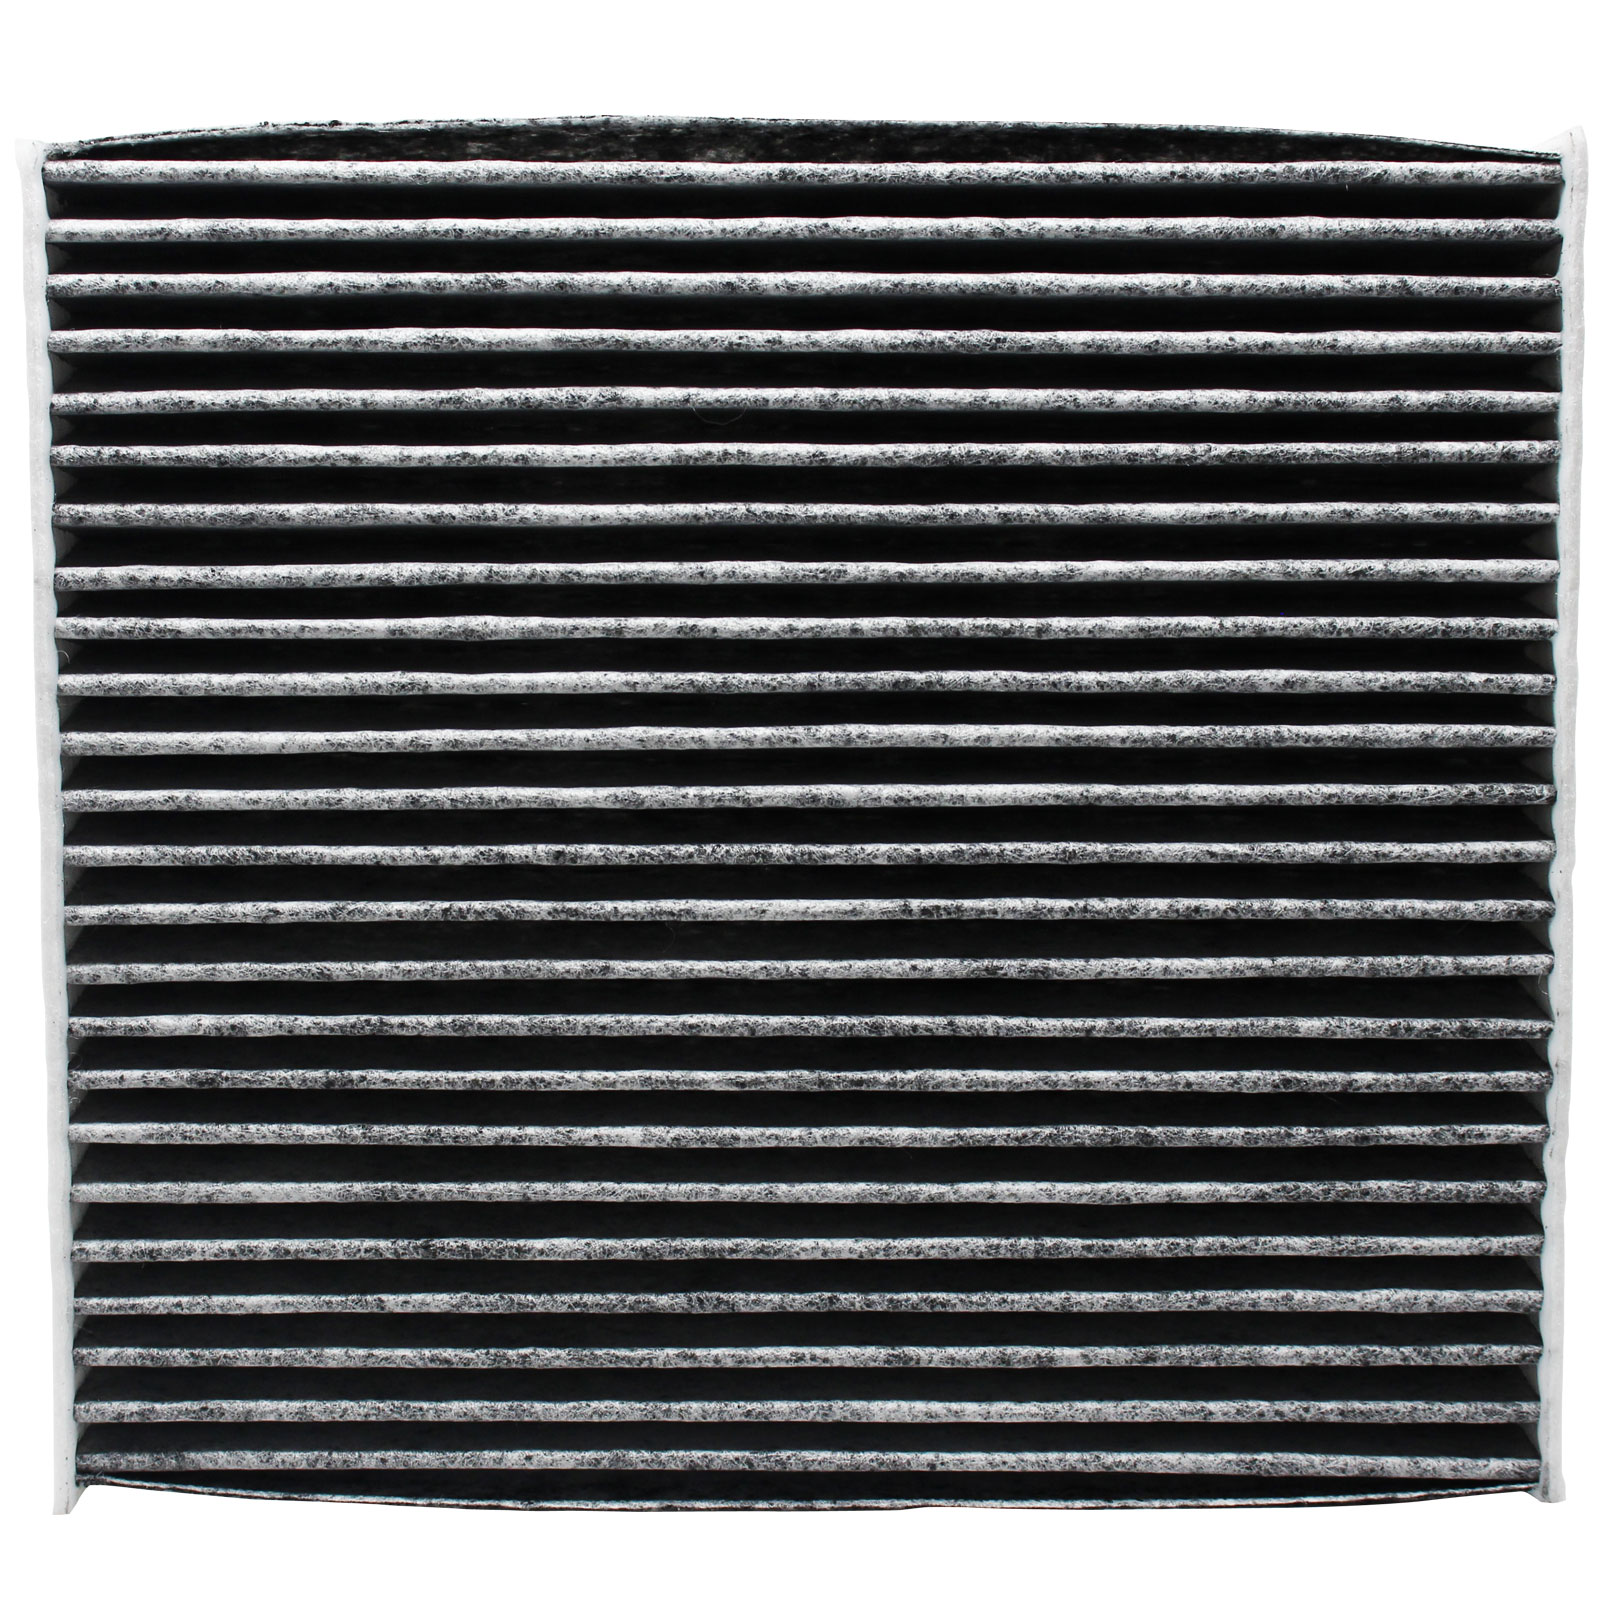 4-Pack Replacement Cabin Air Filter for 2007 Lexus GS 430 V8 4.3L 4293cc Car/Automotive - Activated Carbon, ACF-10285 - image 2 of 4